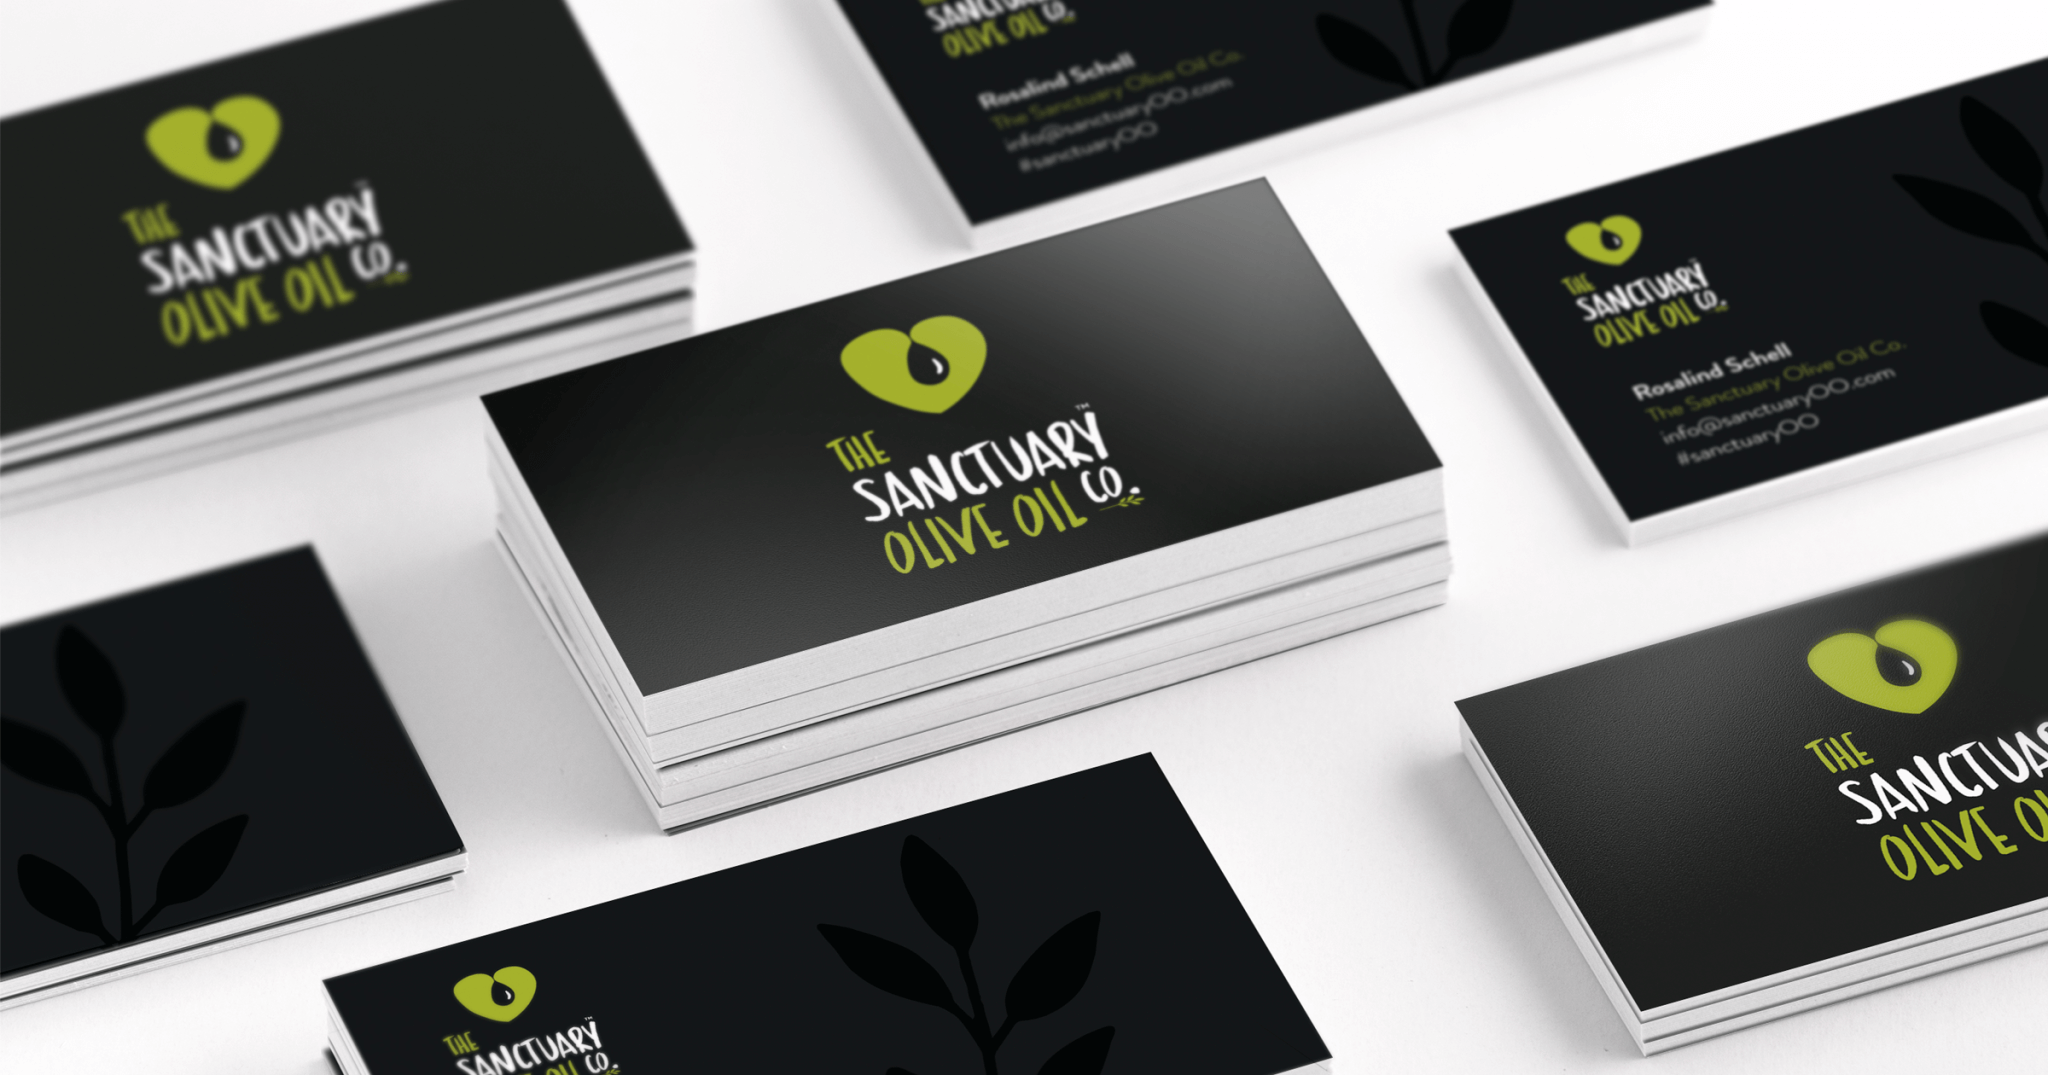 The sanctuary olive oil co business cards by kiddotco business business cards colourmoves